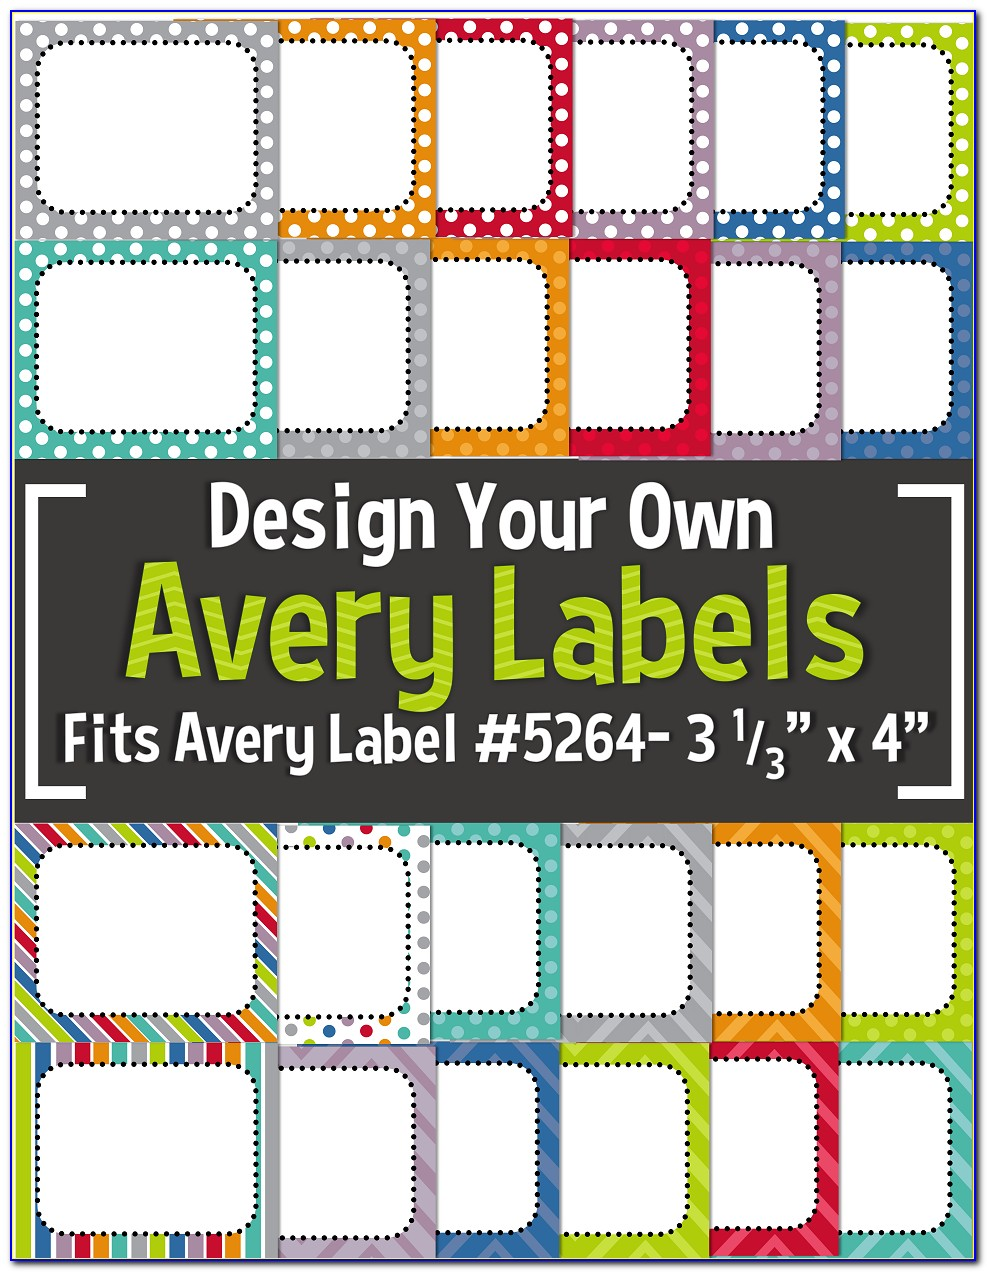 Avery Label Template 5160 For Mac